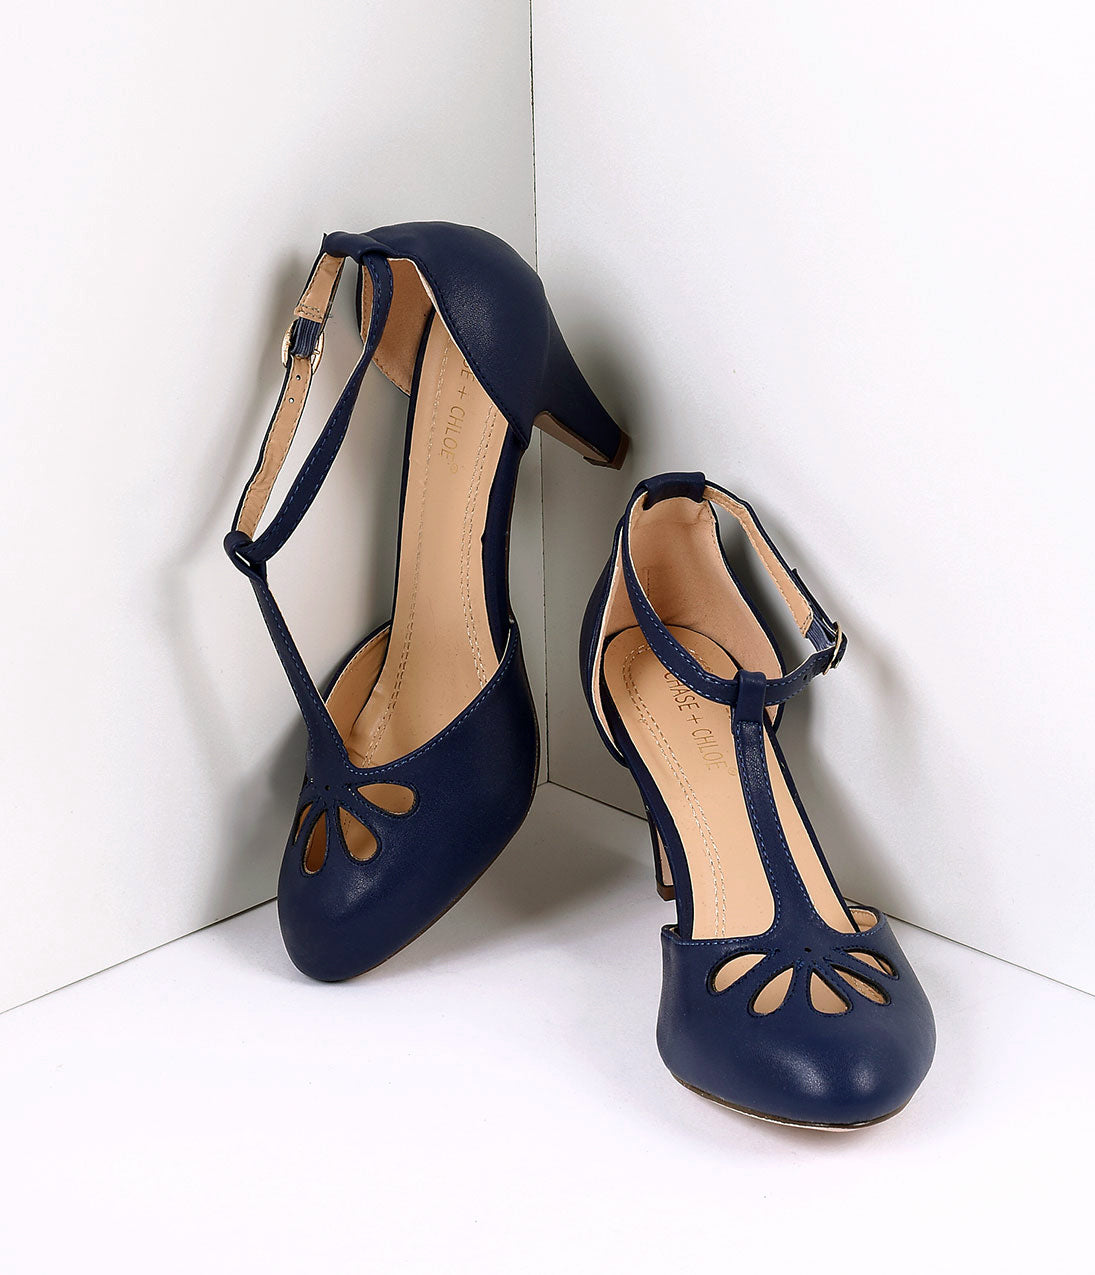 1950s Style Shoes | Heels, Flats, Saddle Shoes Navy Blue Pleather Cutout Kimmy T-Strap Heels $44.00 AT vintagedancer.com